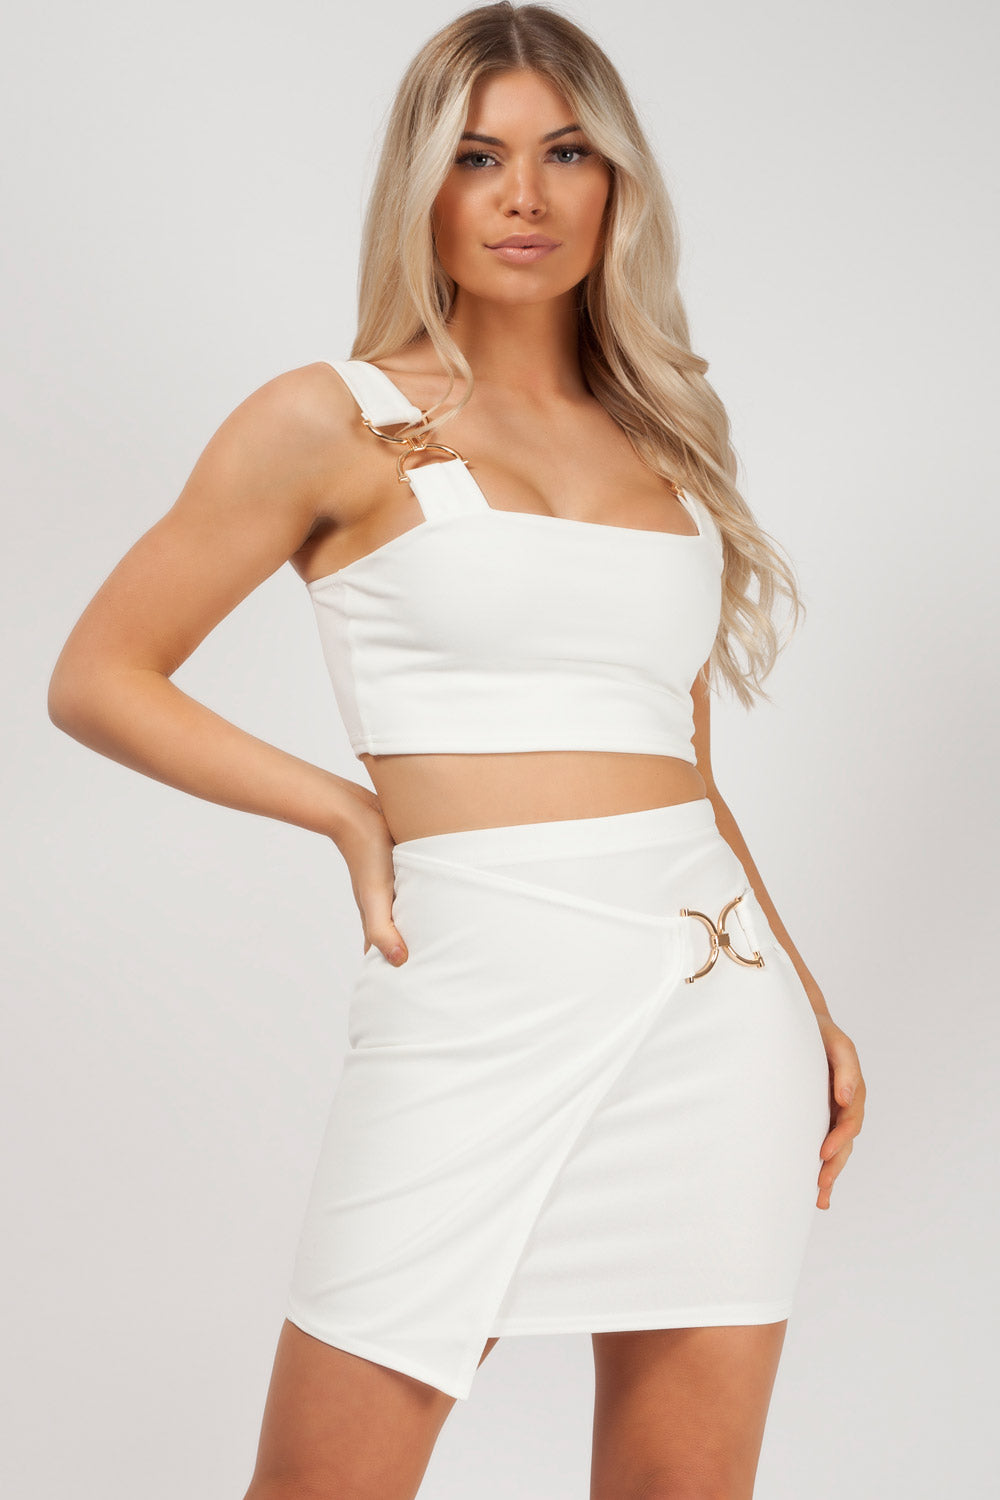 skirt and top white